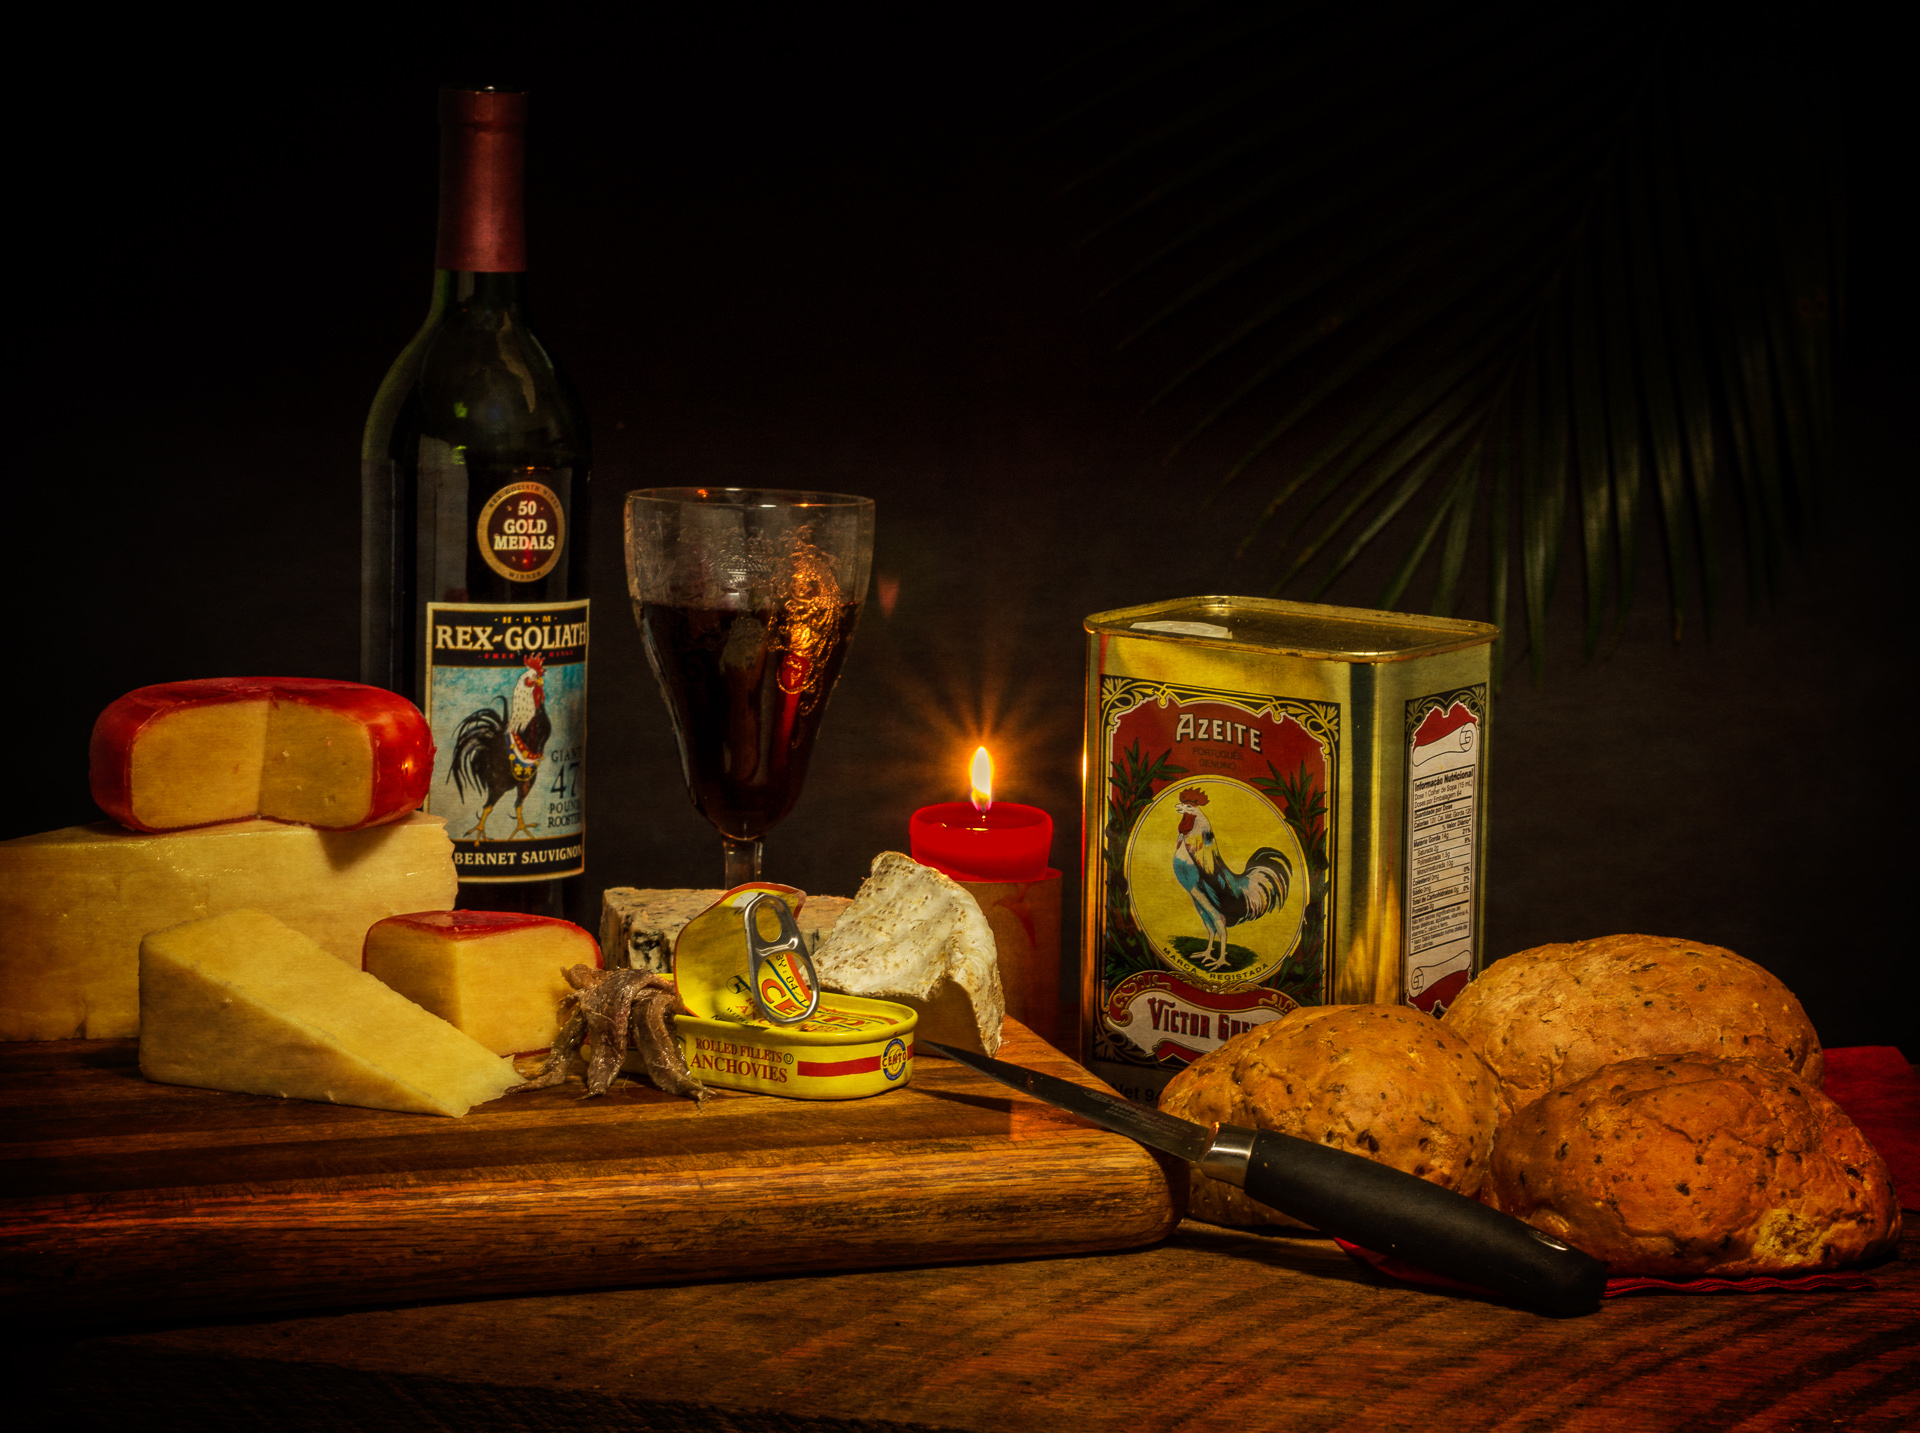 Still Life with Cheese and Anchovies - Still Life Photography